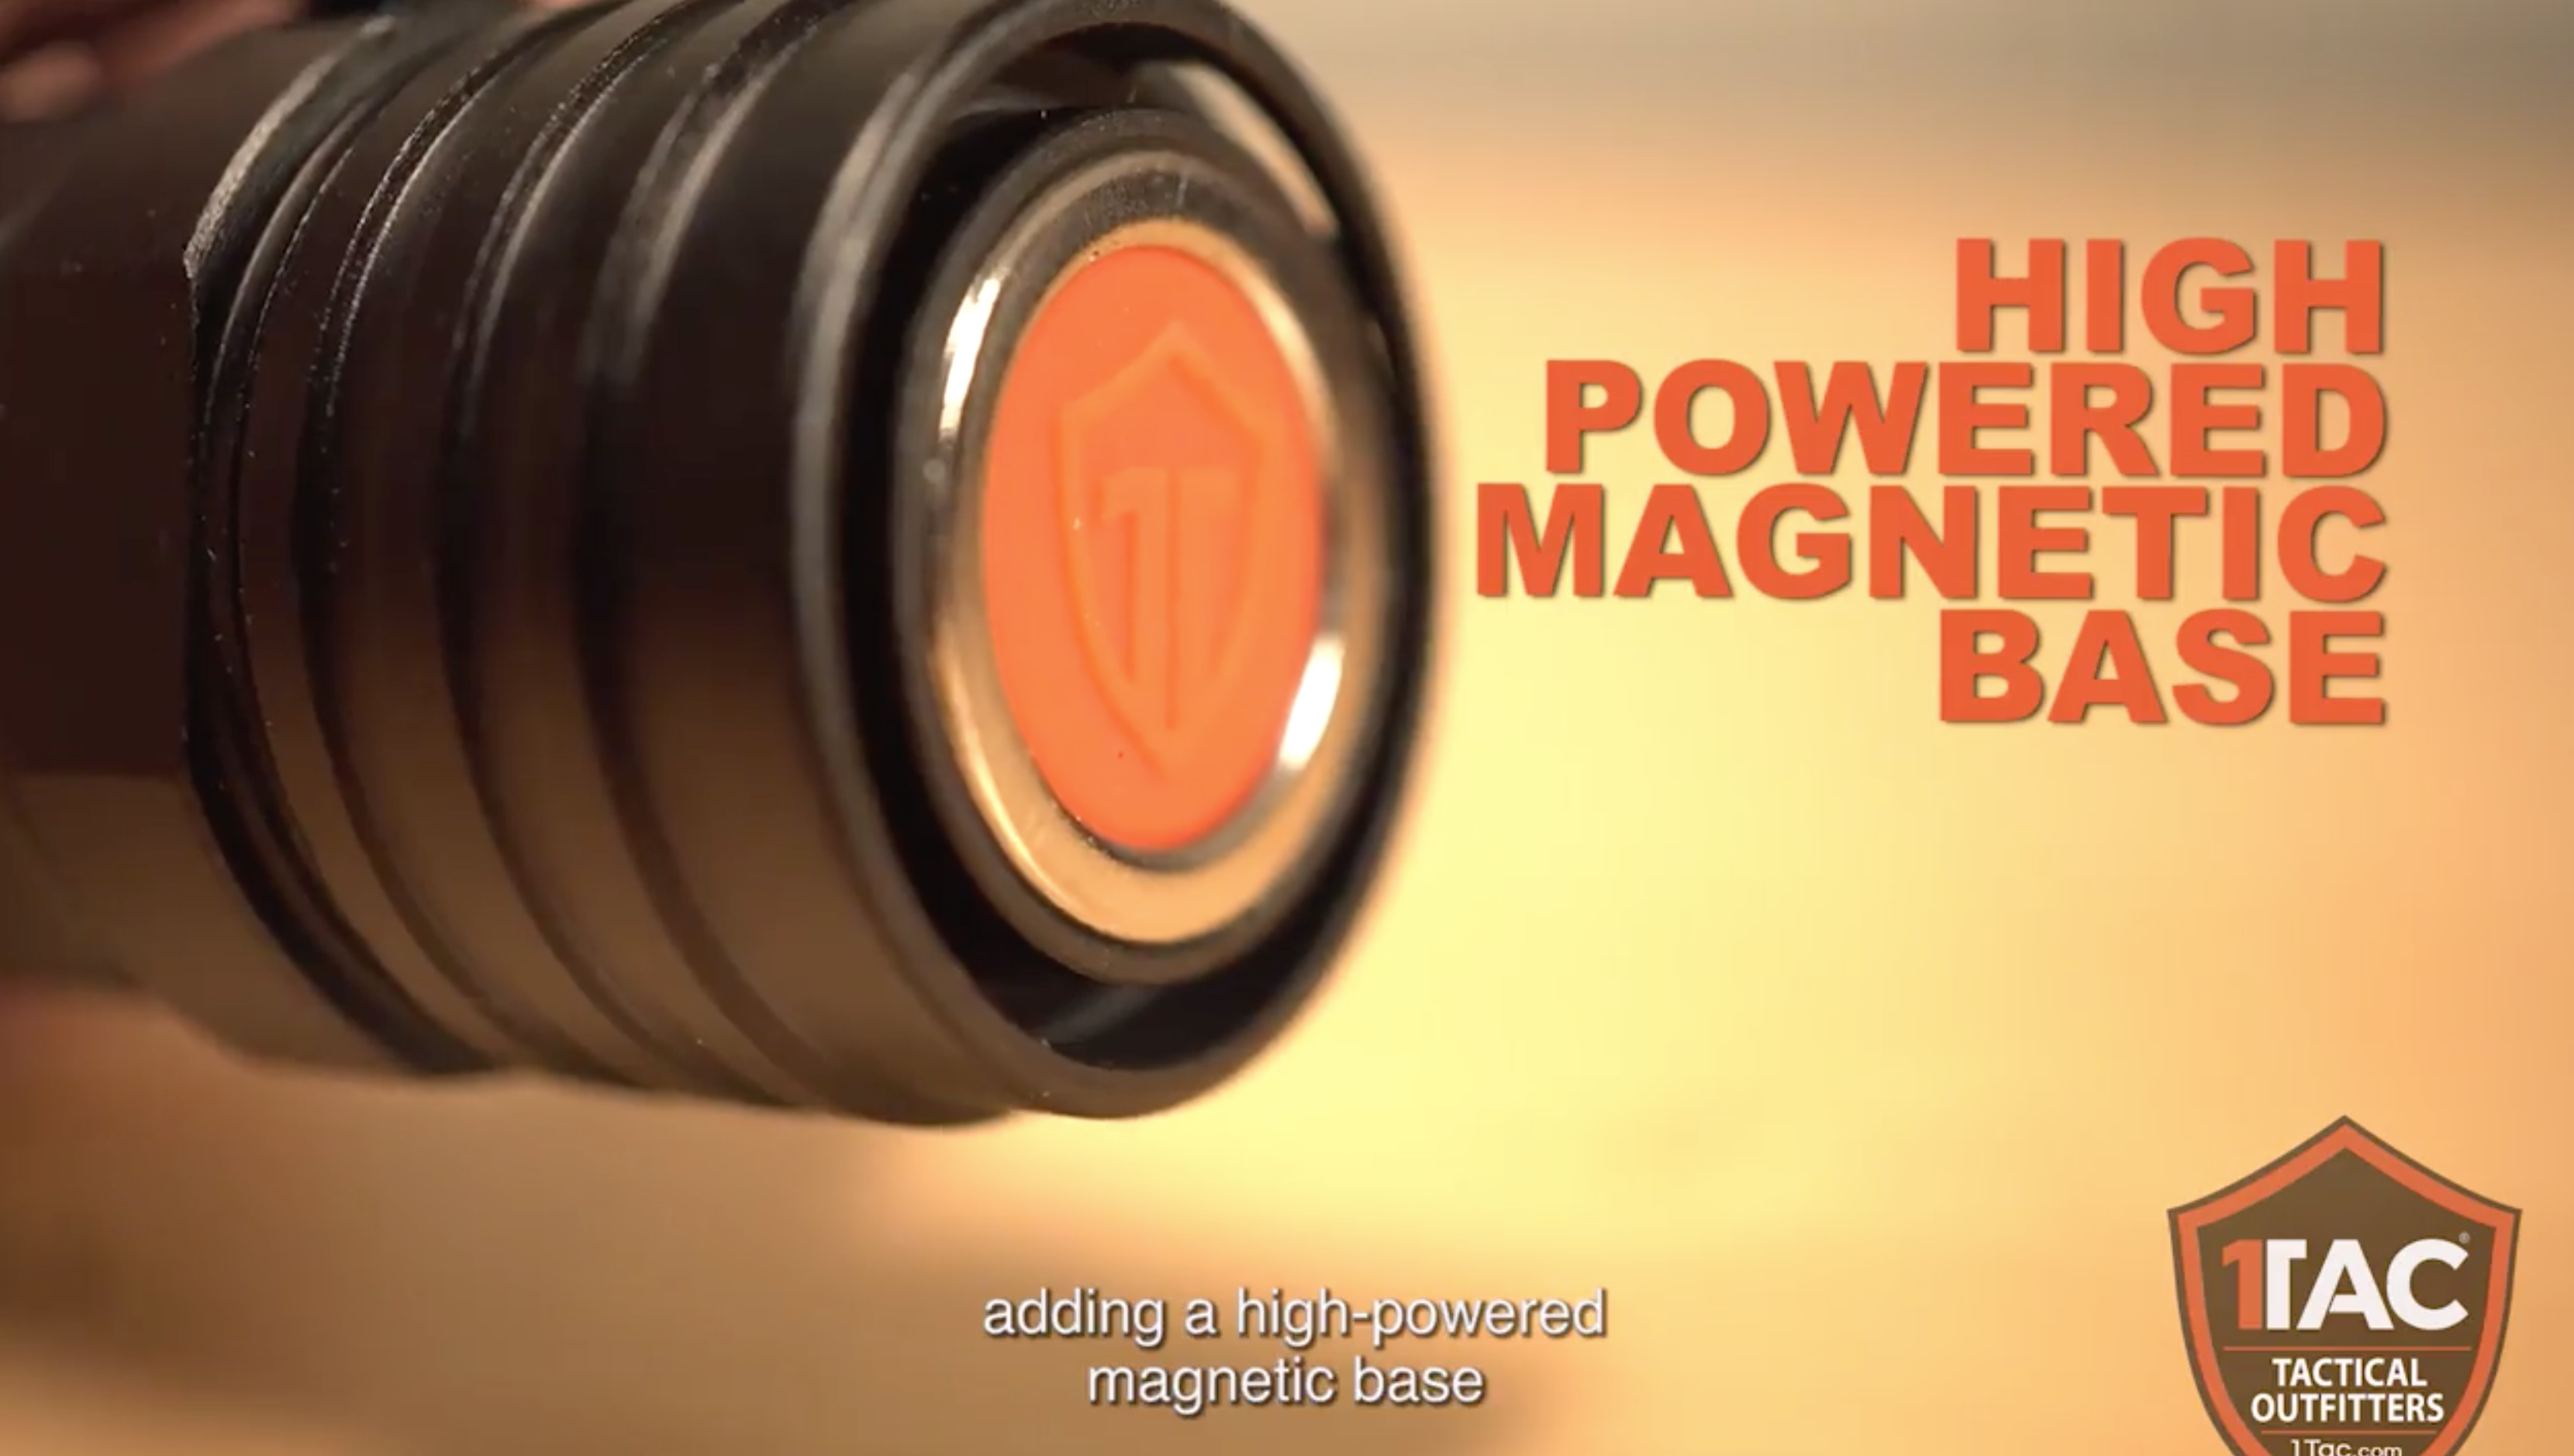 New Powerful Magnetic Base